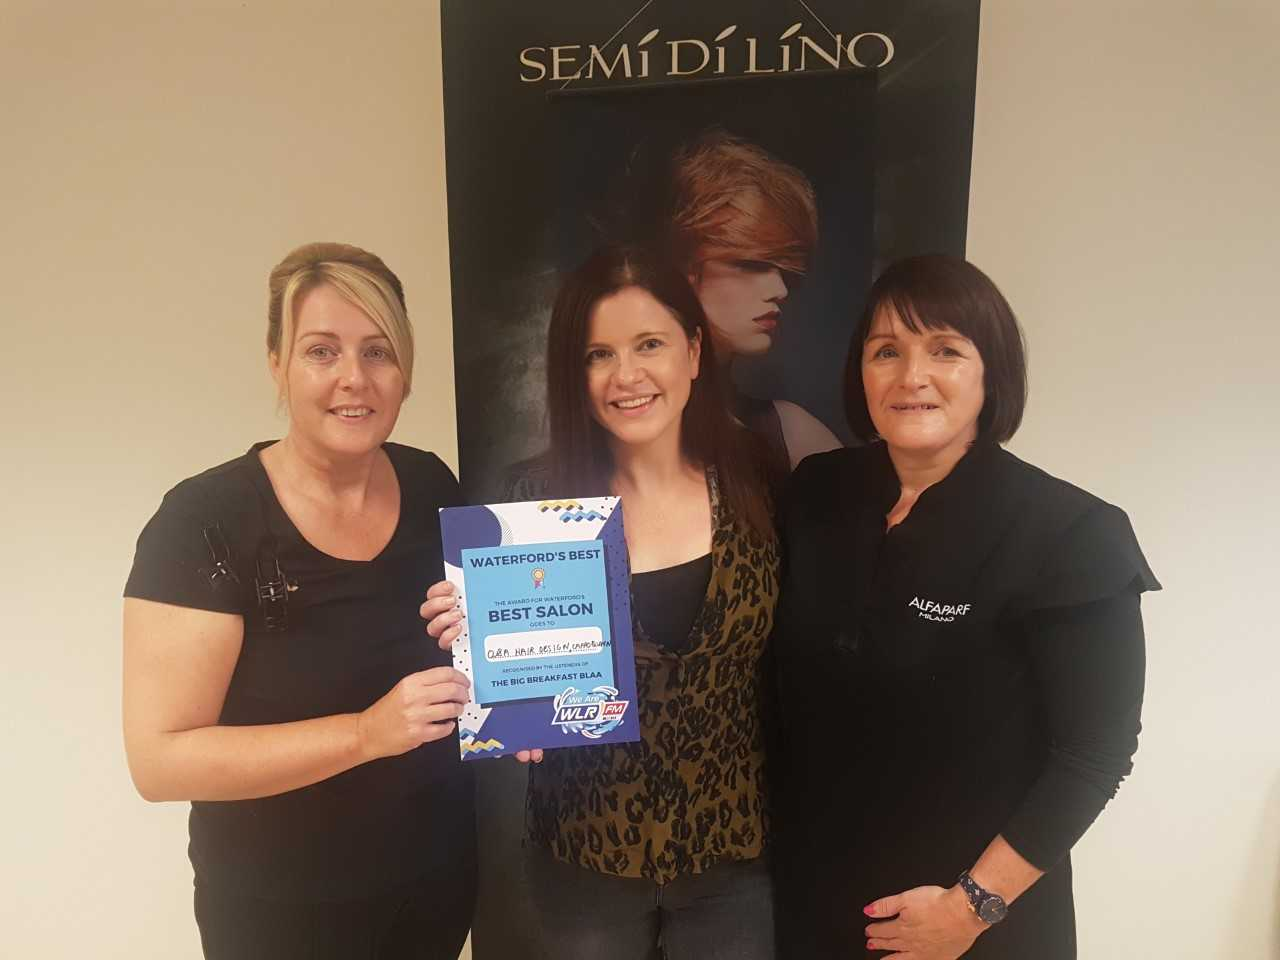 O &A Hair Design in Cappoquin is voted Waterford's best salon by Big Breakfast Blaa listeners!